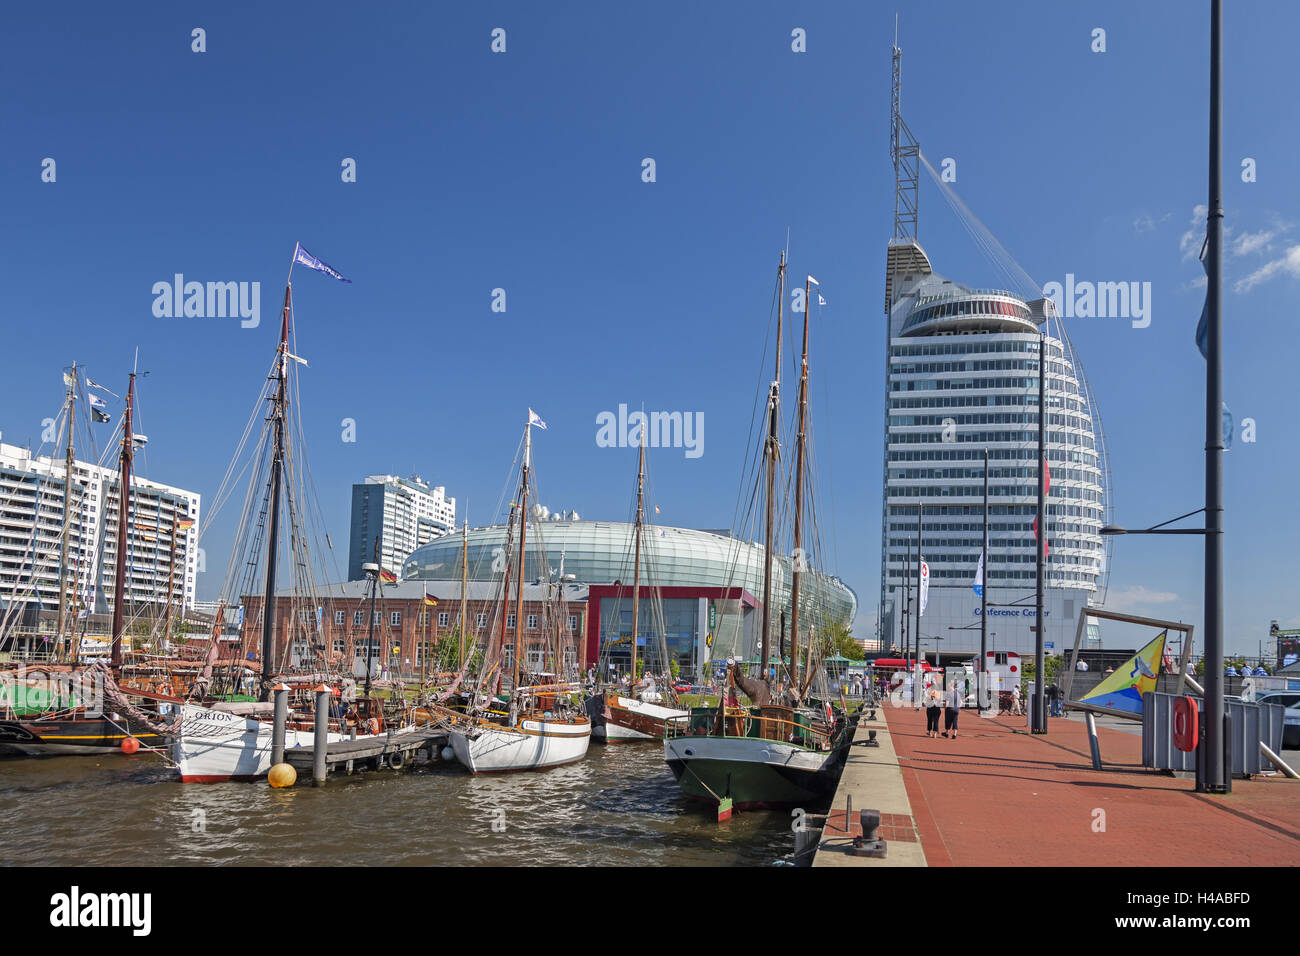 New harbour, sailing ships, harbour promenade, climate house, Atlantic hotel of Sail city, Germany, Bremerhaven, - Stock Image